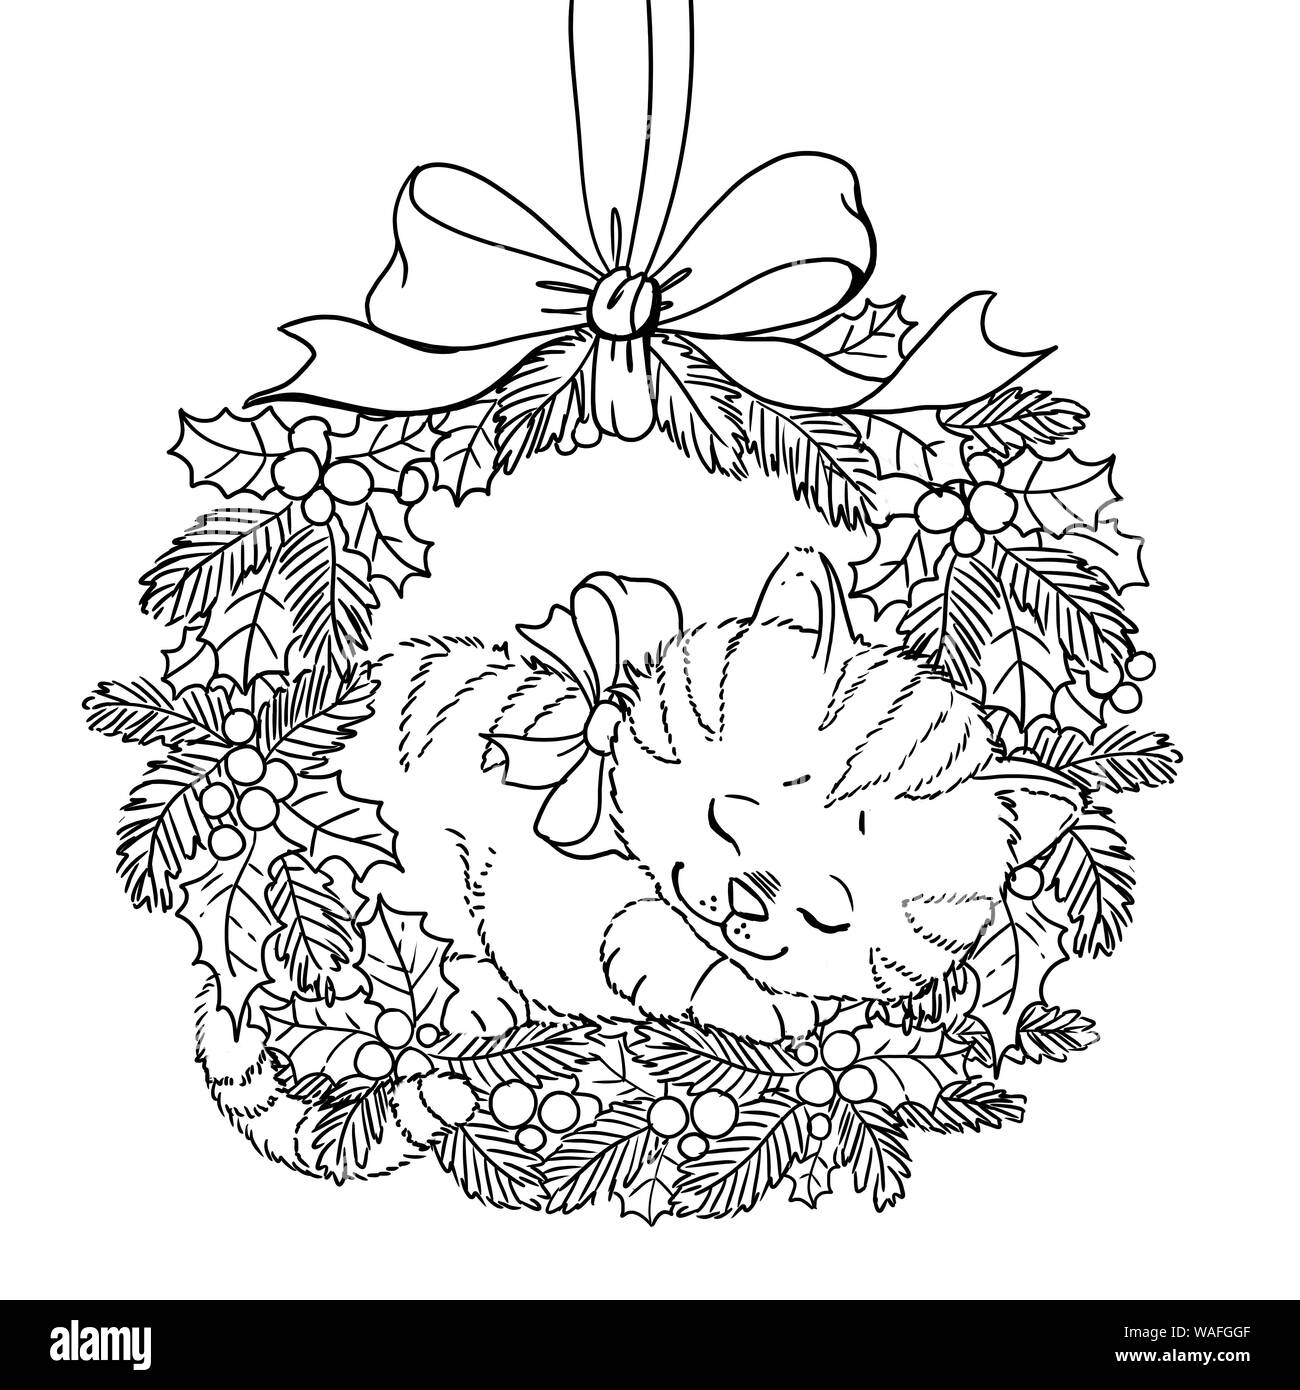 Christmas Wreath Coloring Page Doodle Pattern With Cute Sleeping Kitten And A Bow Stock Photo Alamy